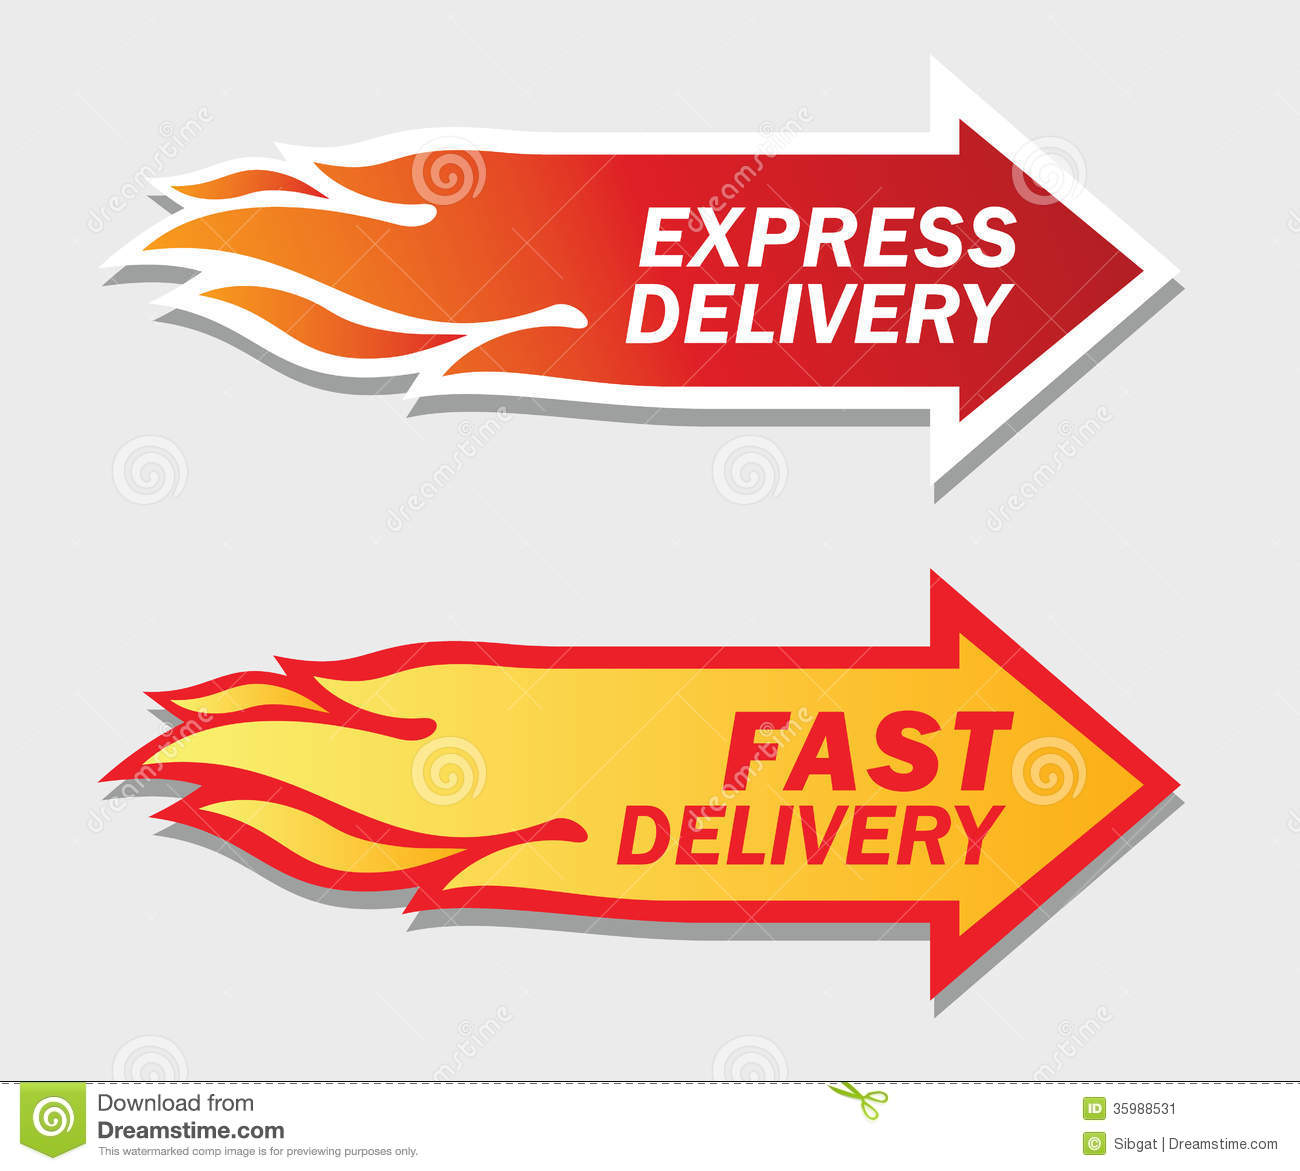 Express And Fast Delivery Symbols. Stock Vector ...